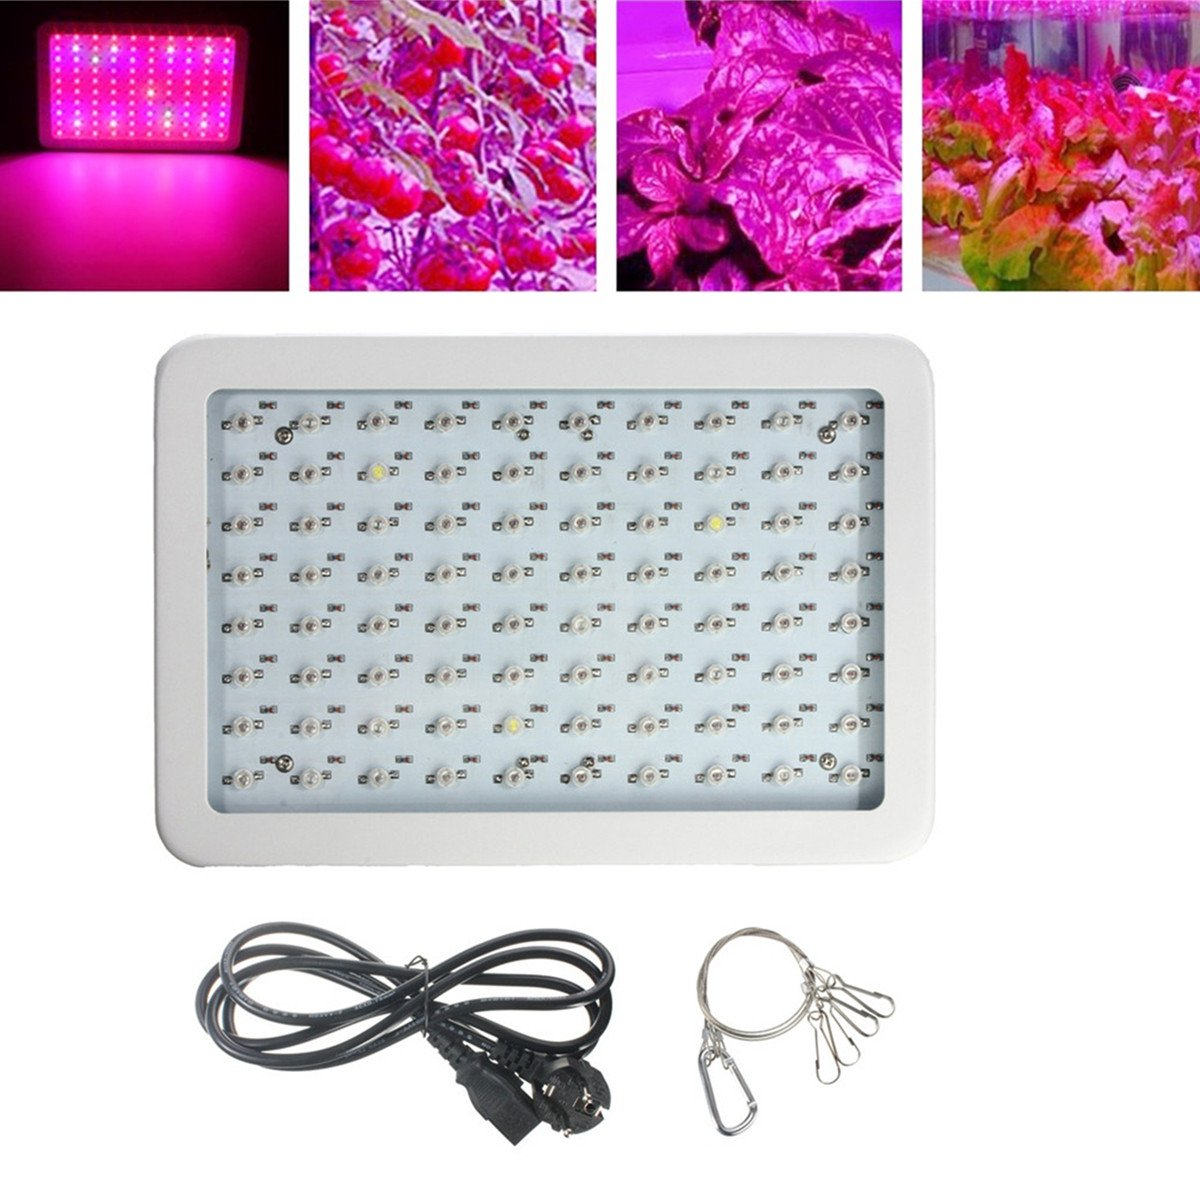 KING DO WAY 100w Pflanzenleuchte LED Grow Light spektrum führte ...